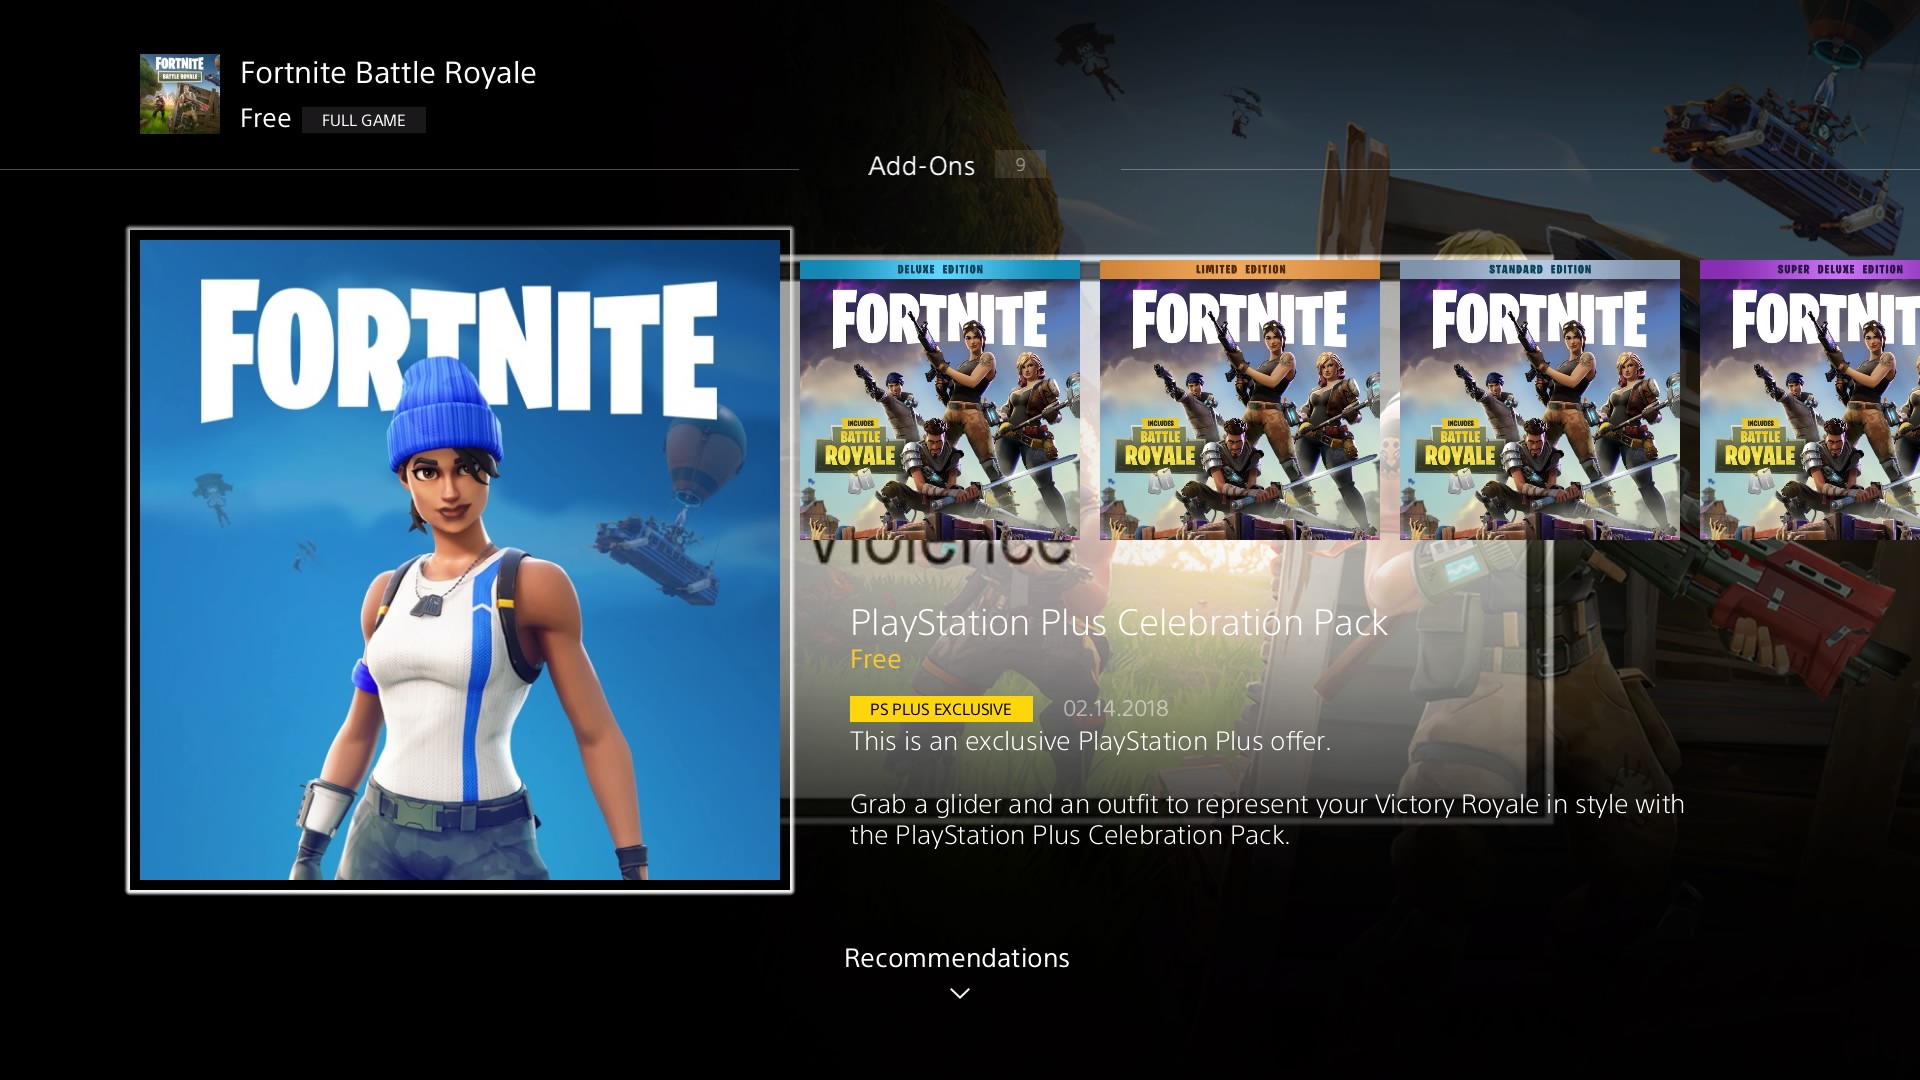 Fortnite Free PS Plus Celebration Skin Live On PS4 - How To Download